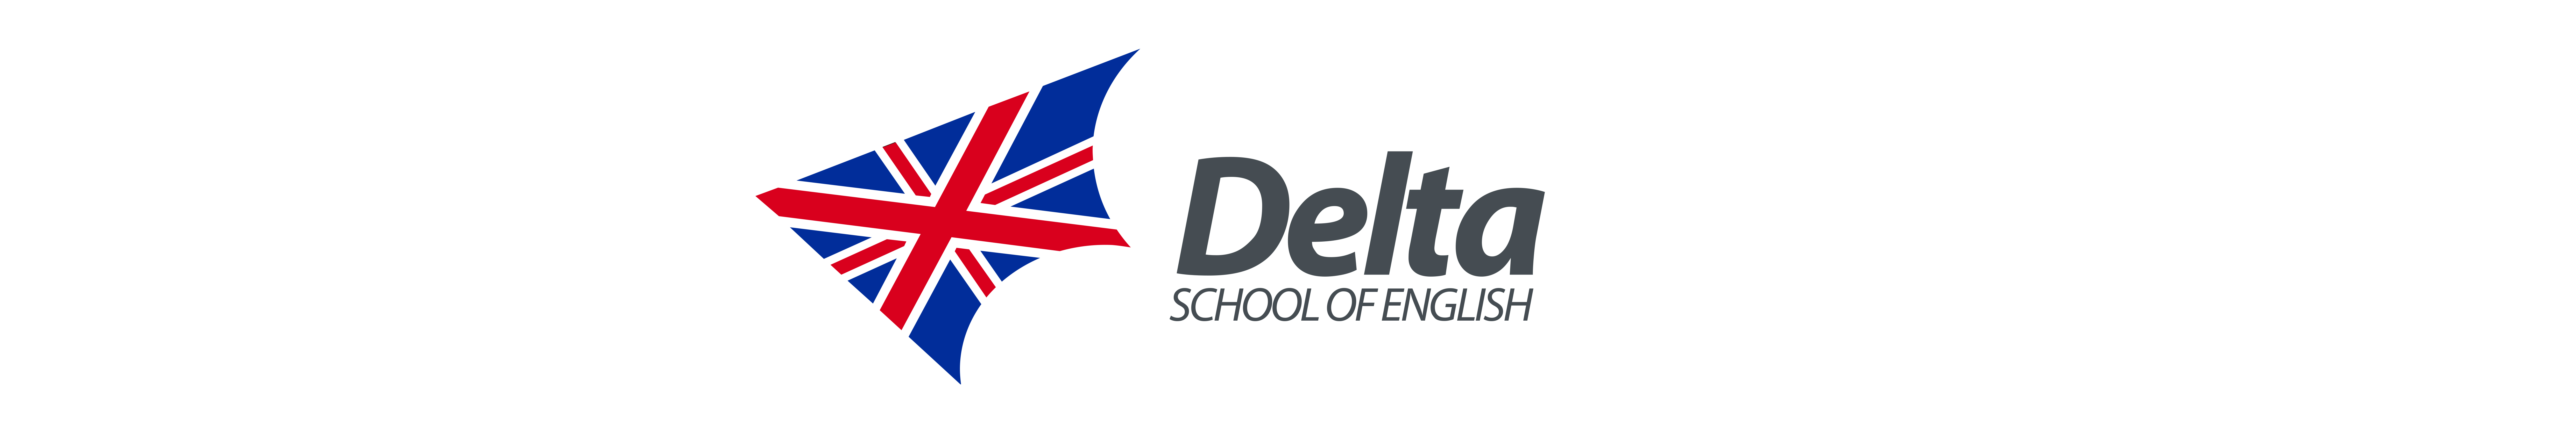 Delta School of English